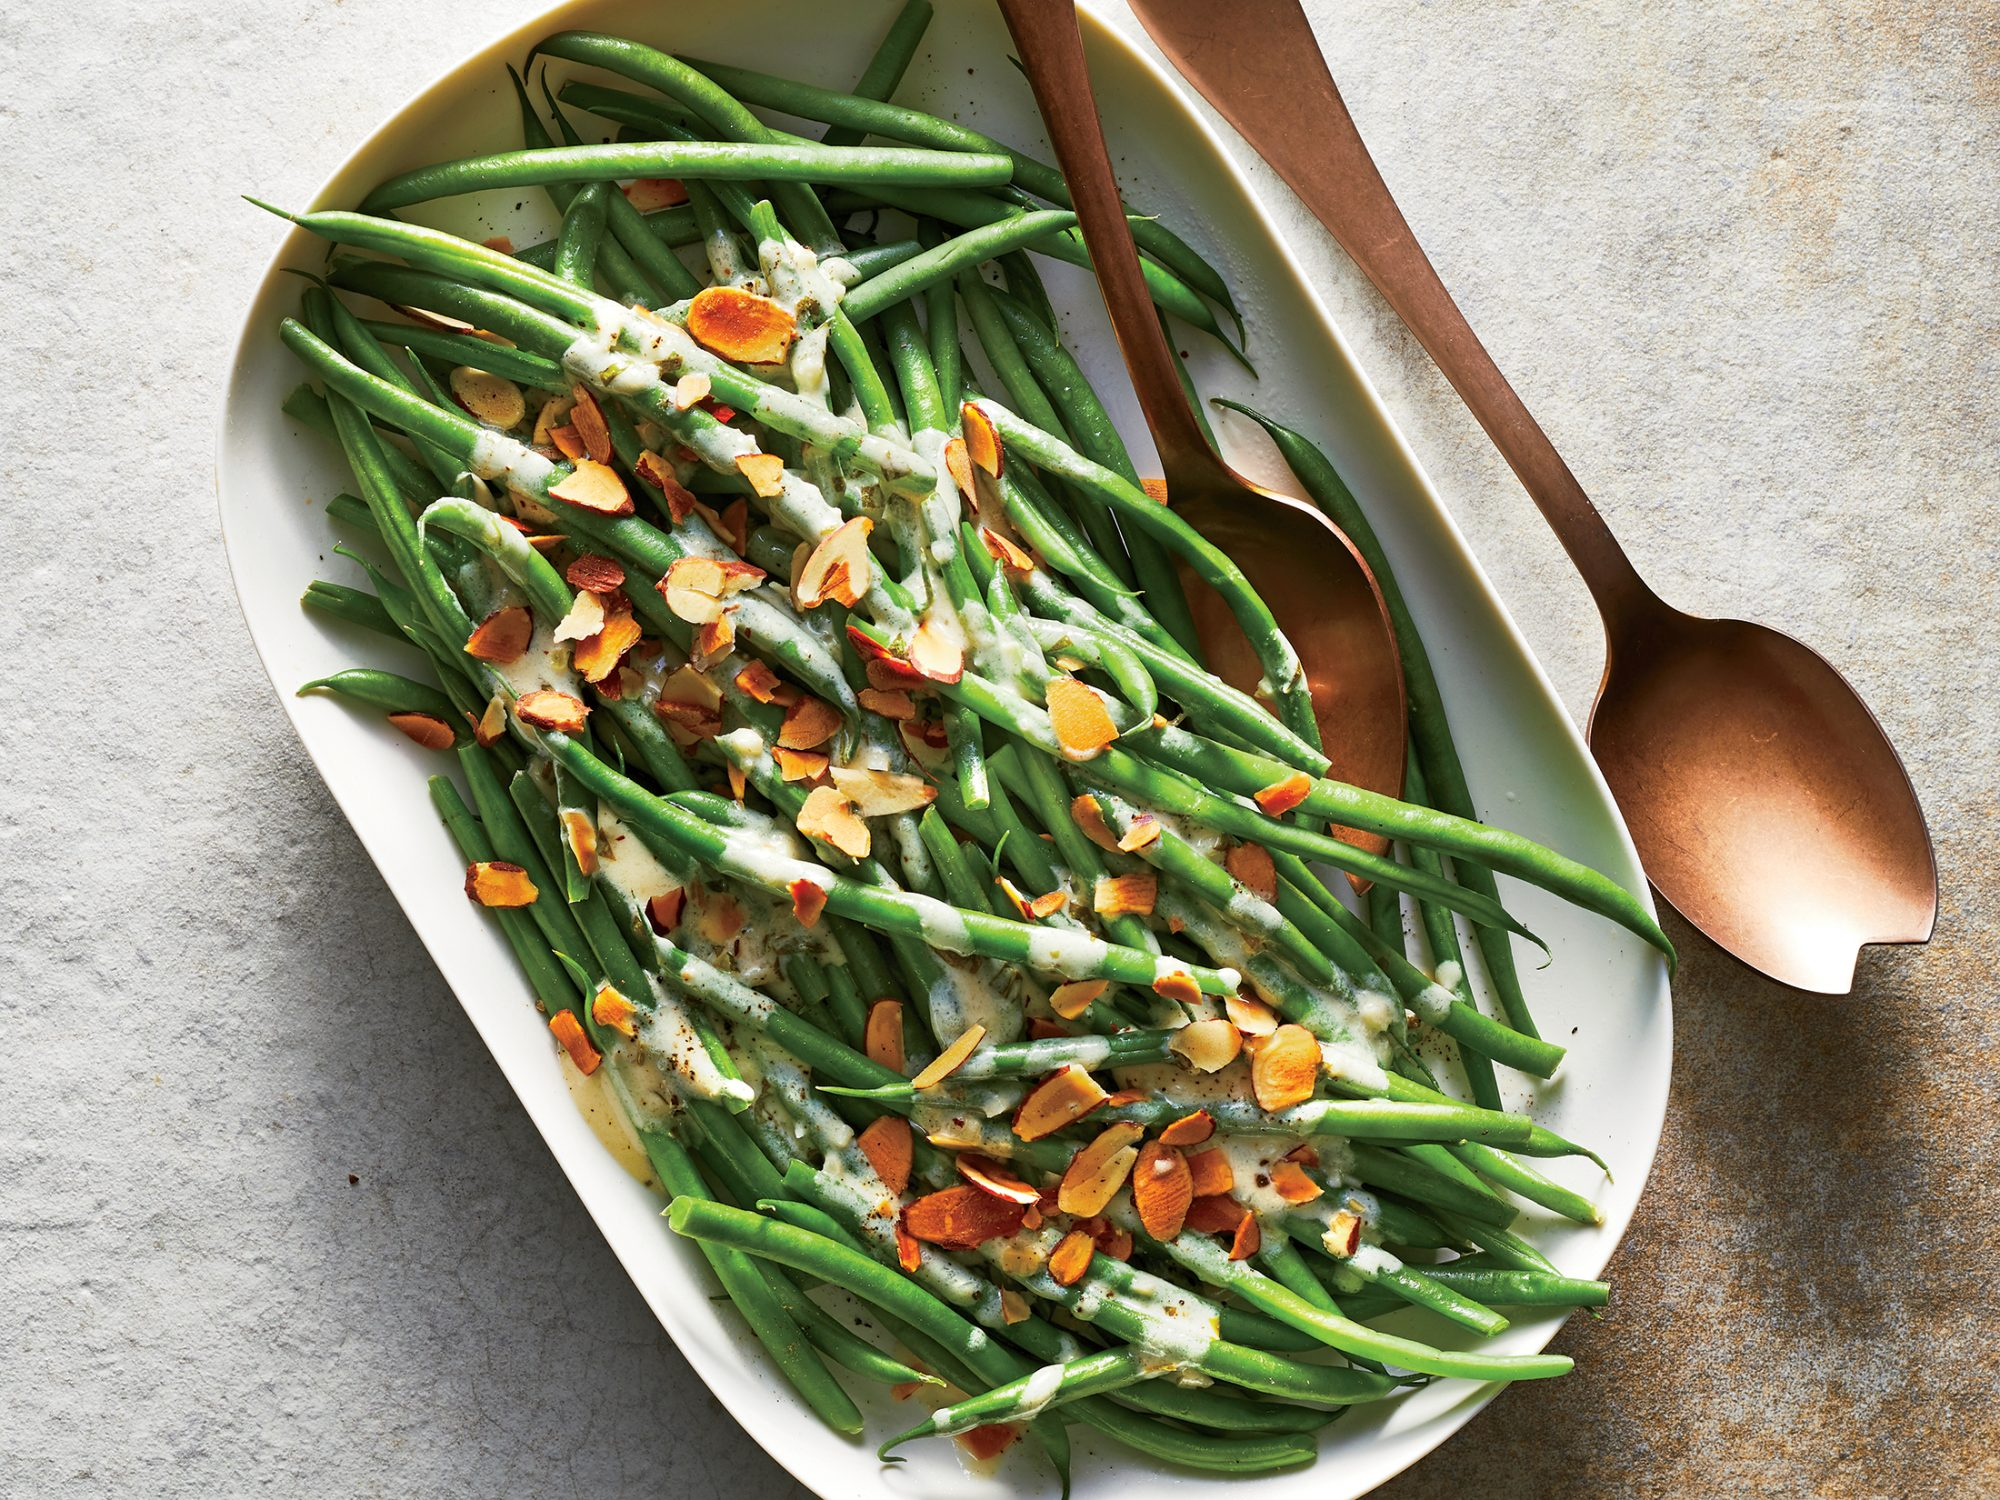 10 Easy Ways to Cook With Green Beans